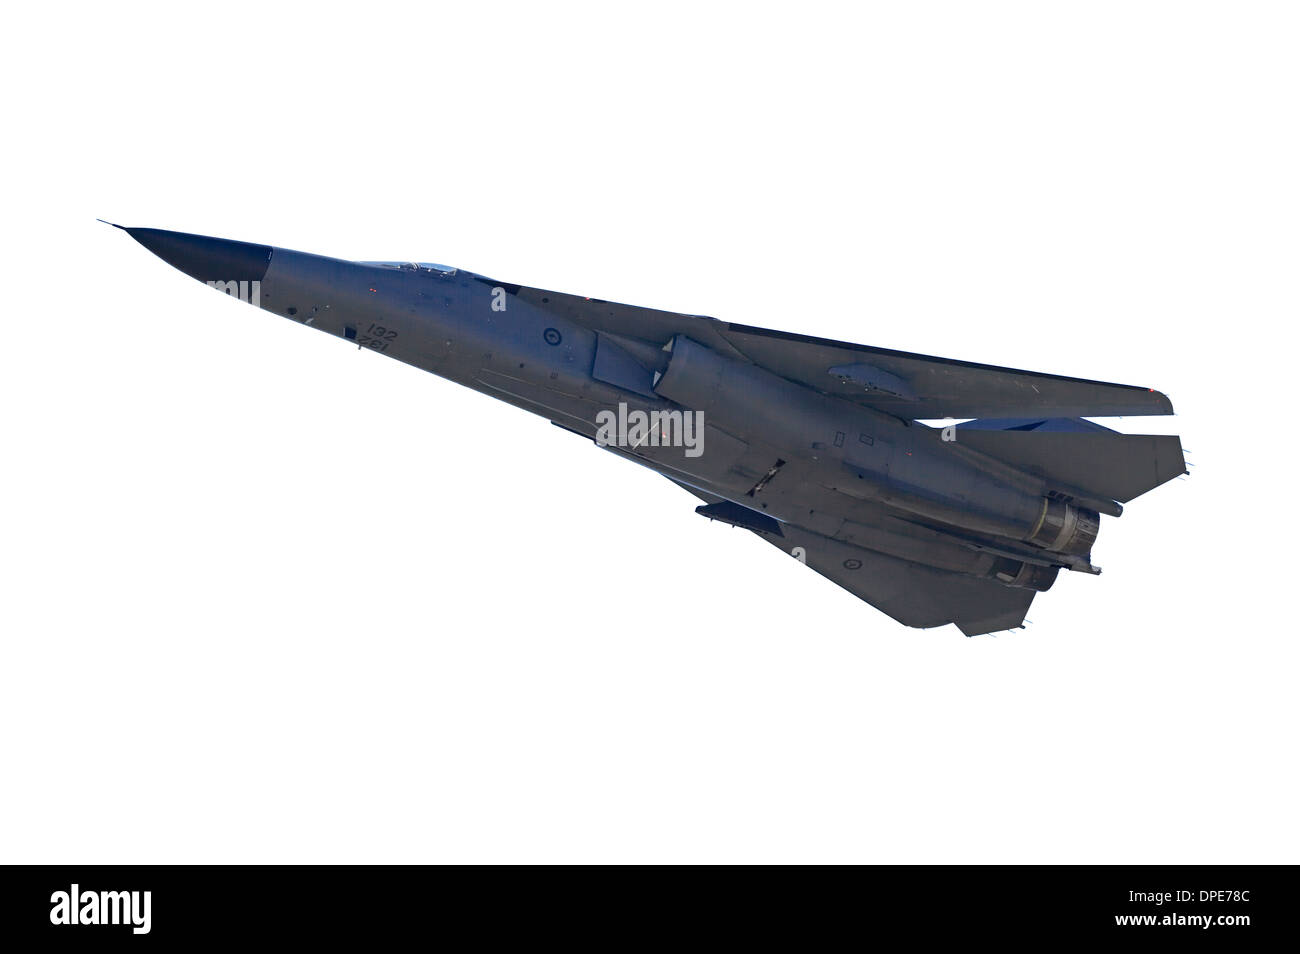 Cutout of General Dynamics F-111 Swing Wing Jet Fighter (RAAF) - Stock Image